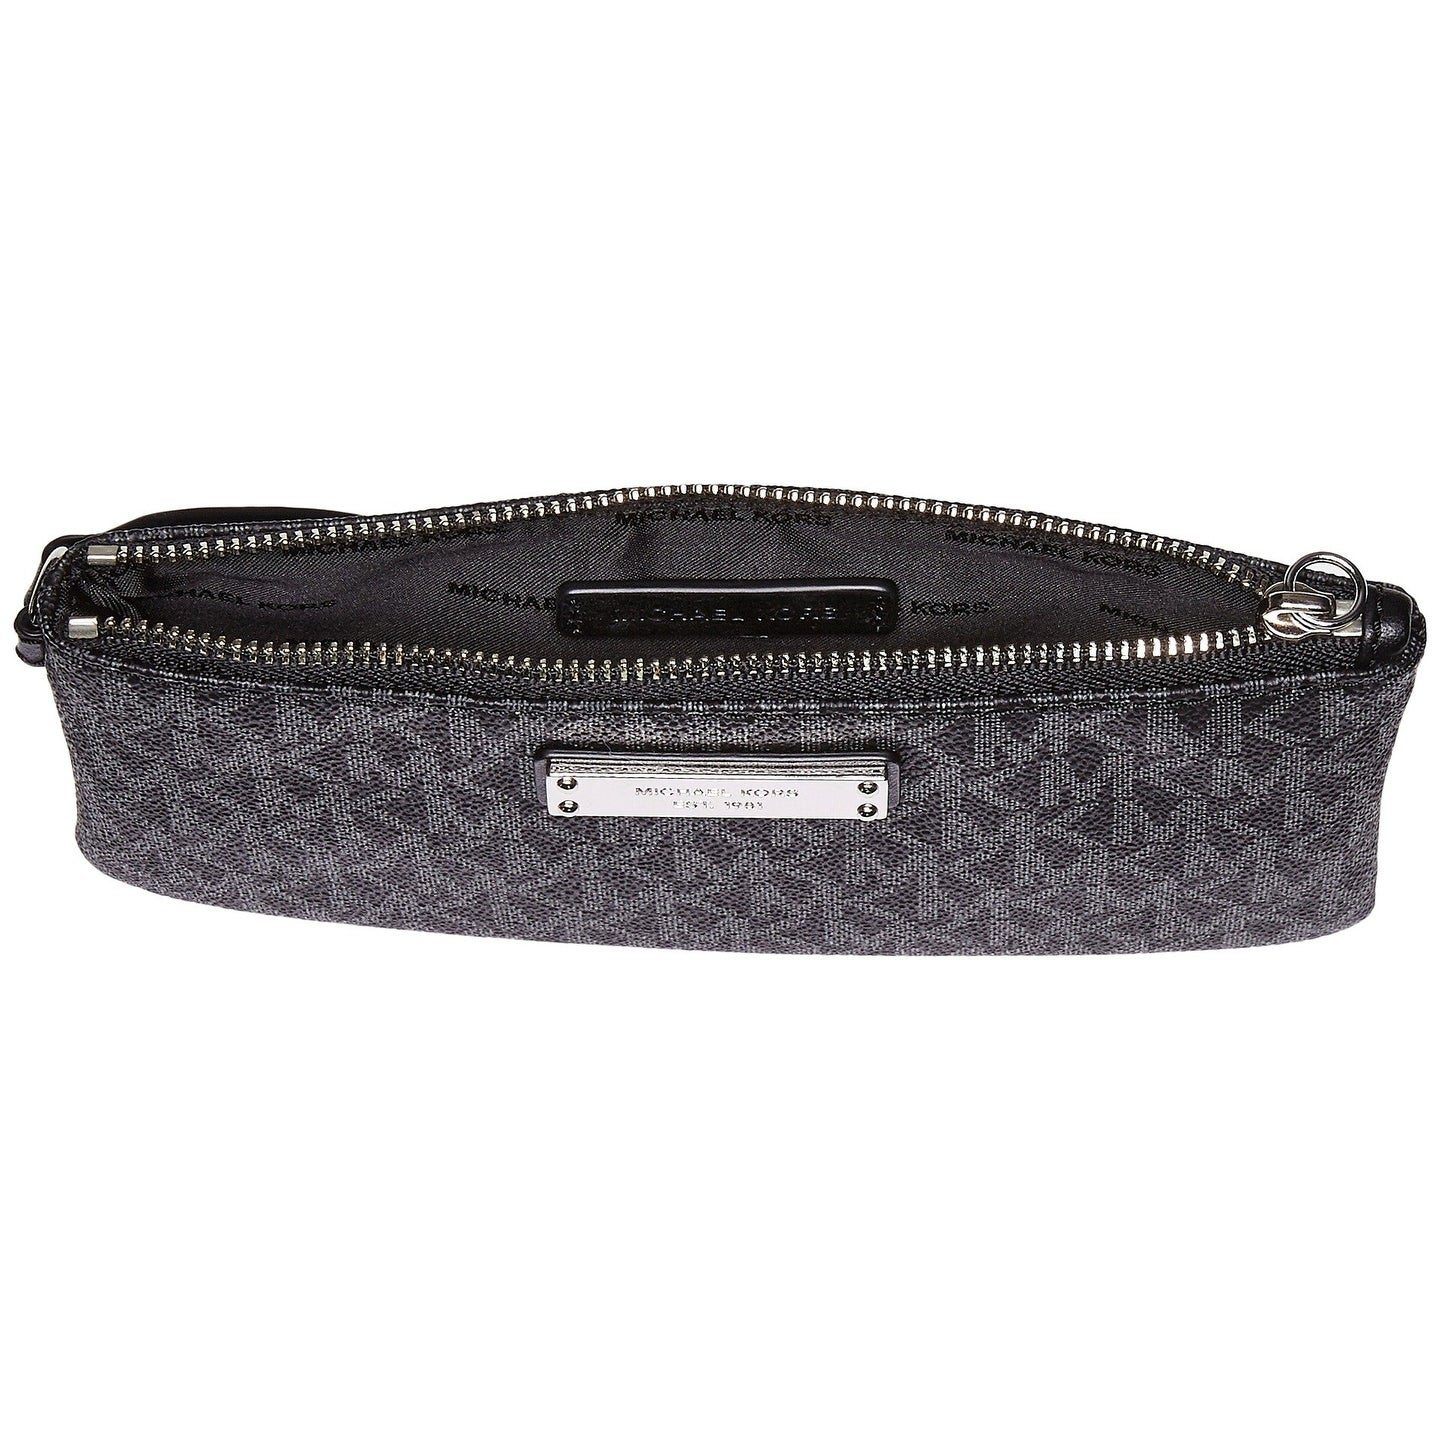 3b13b89beab5 Shop MICHAEL Michael Kors Jet Set Signature Medium Wristlet MK Logo Black -  Free Shipping Today - Overstock - 19435452